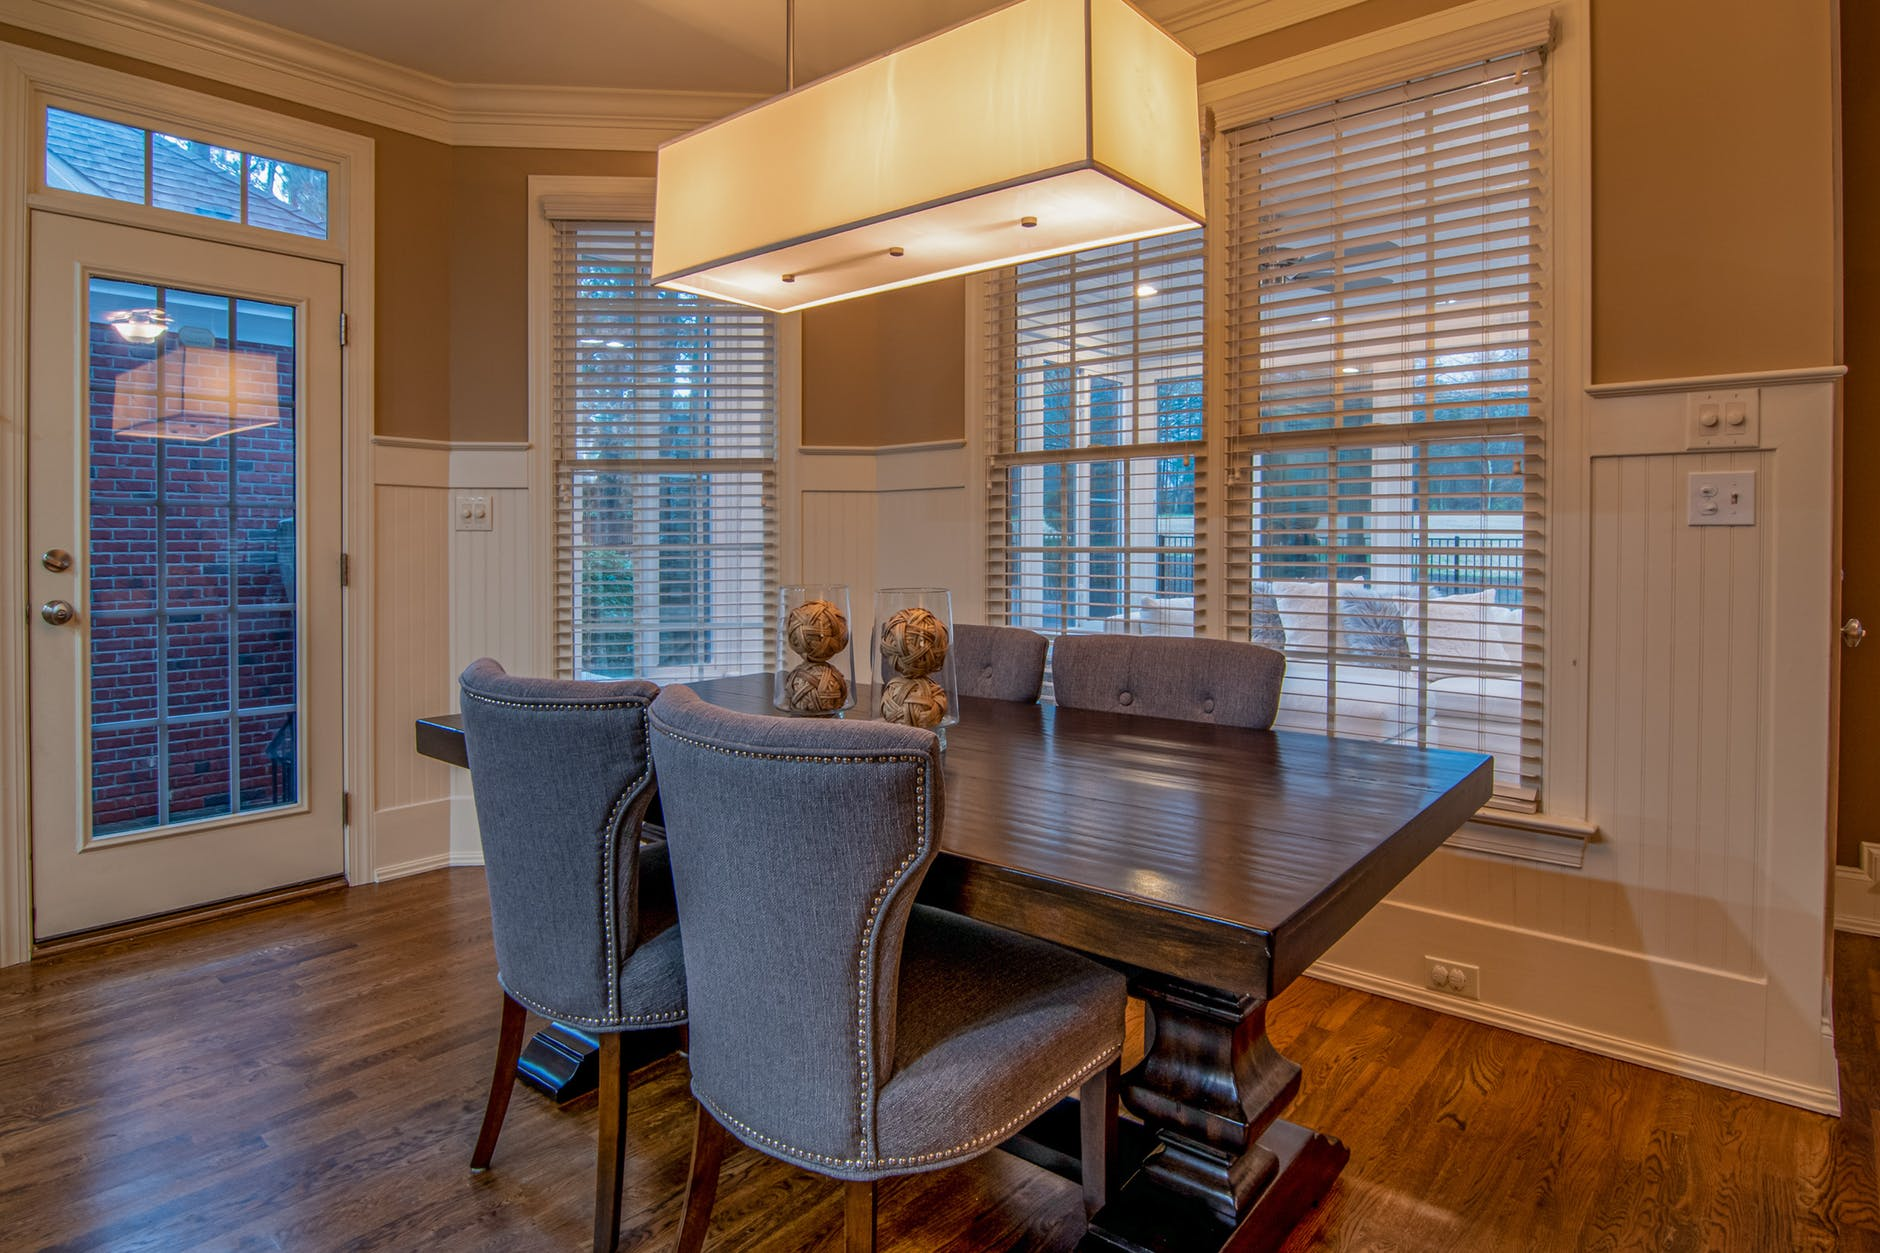 photo of dining table and chairs